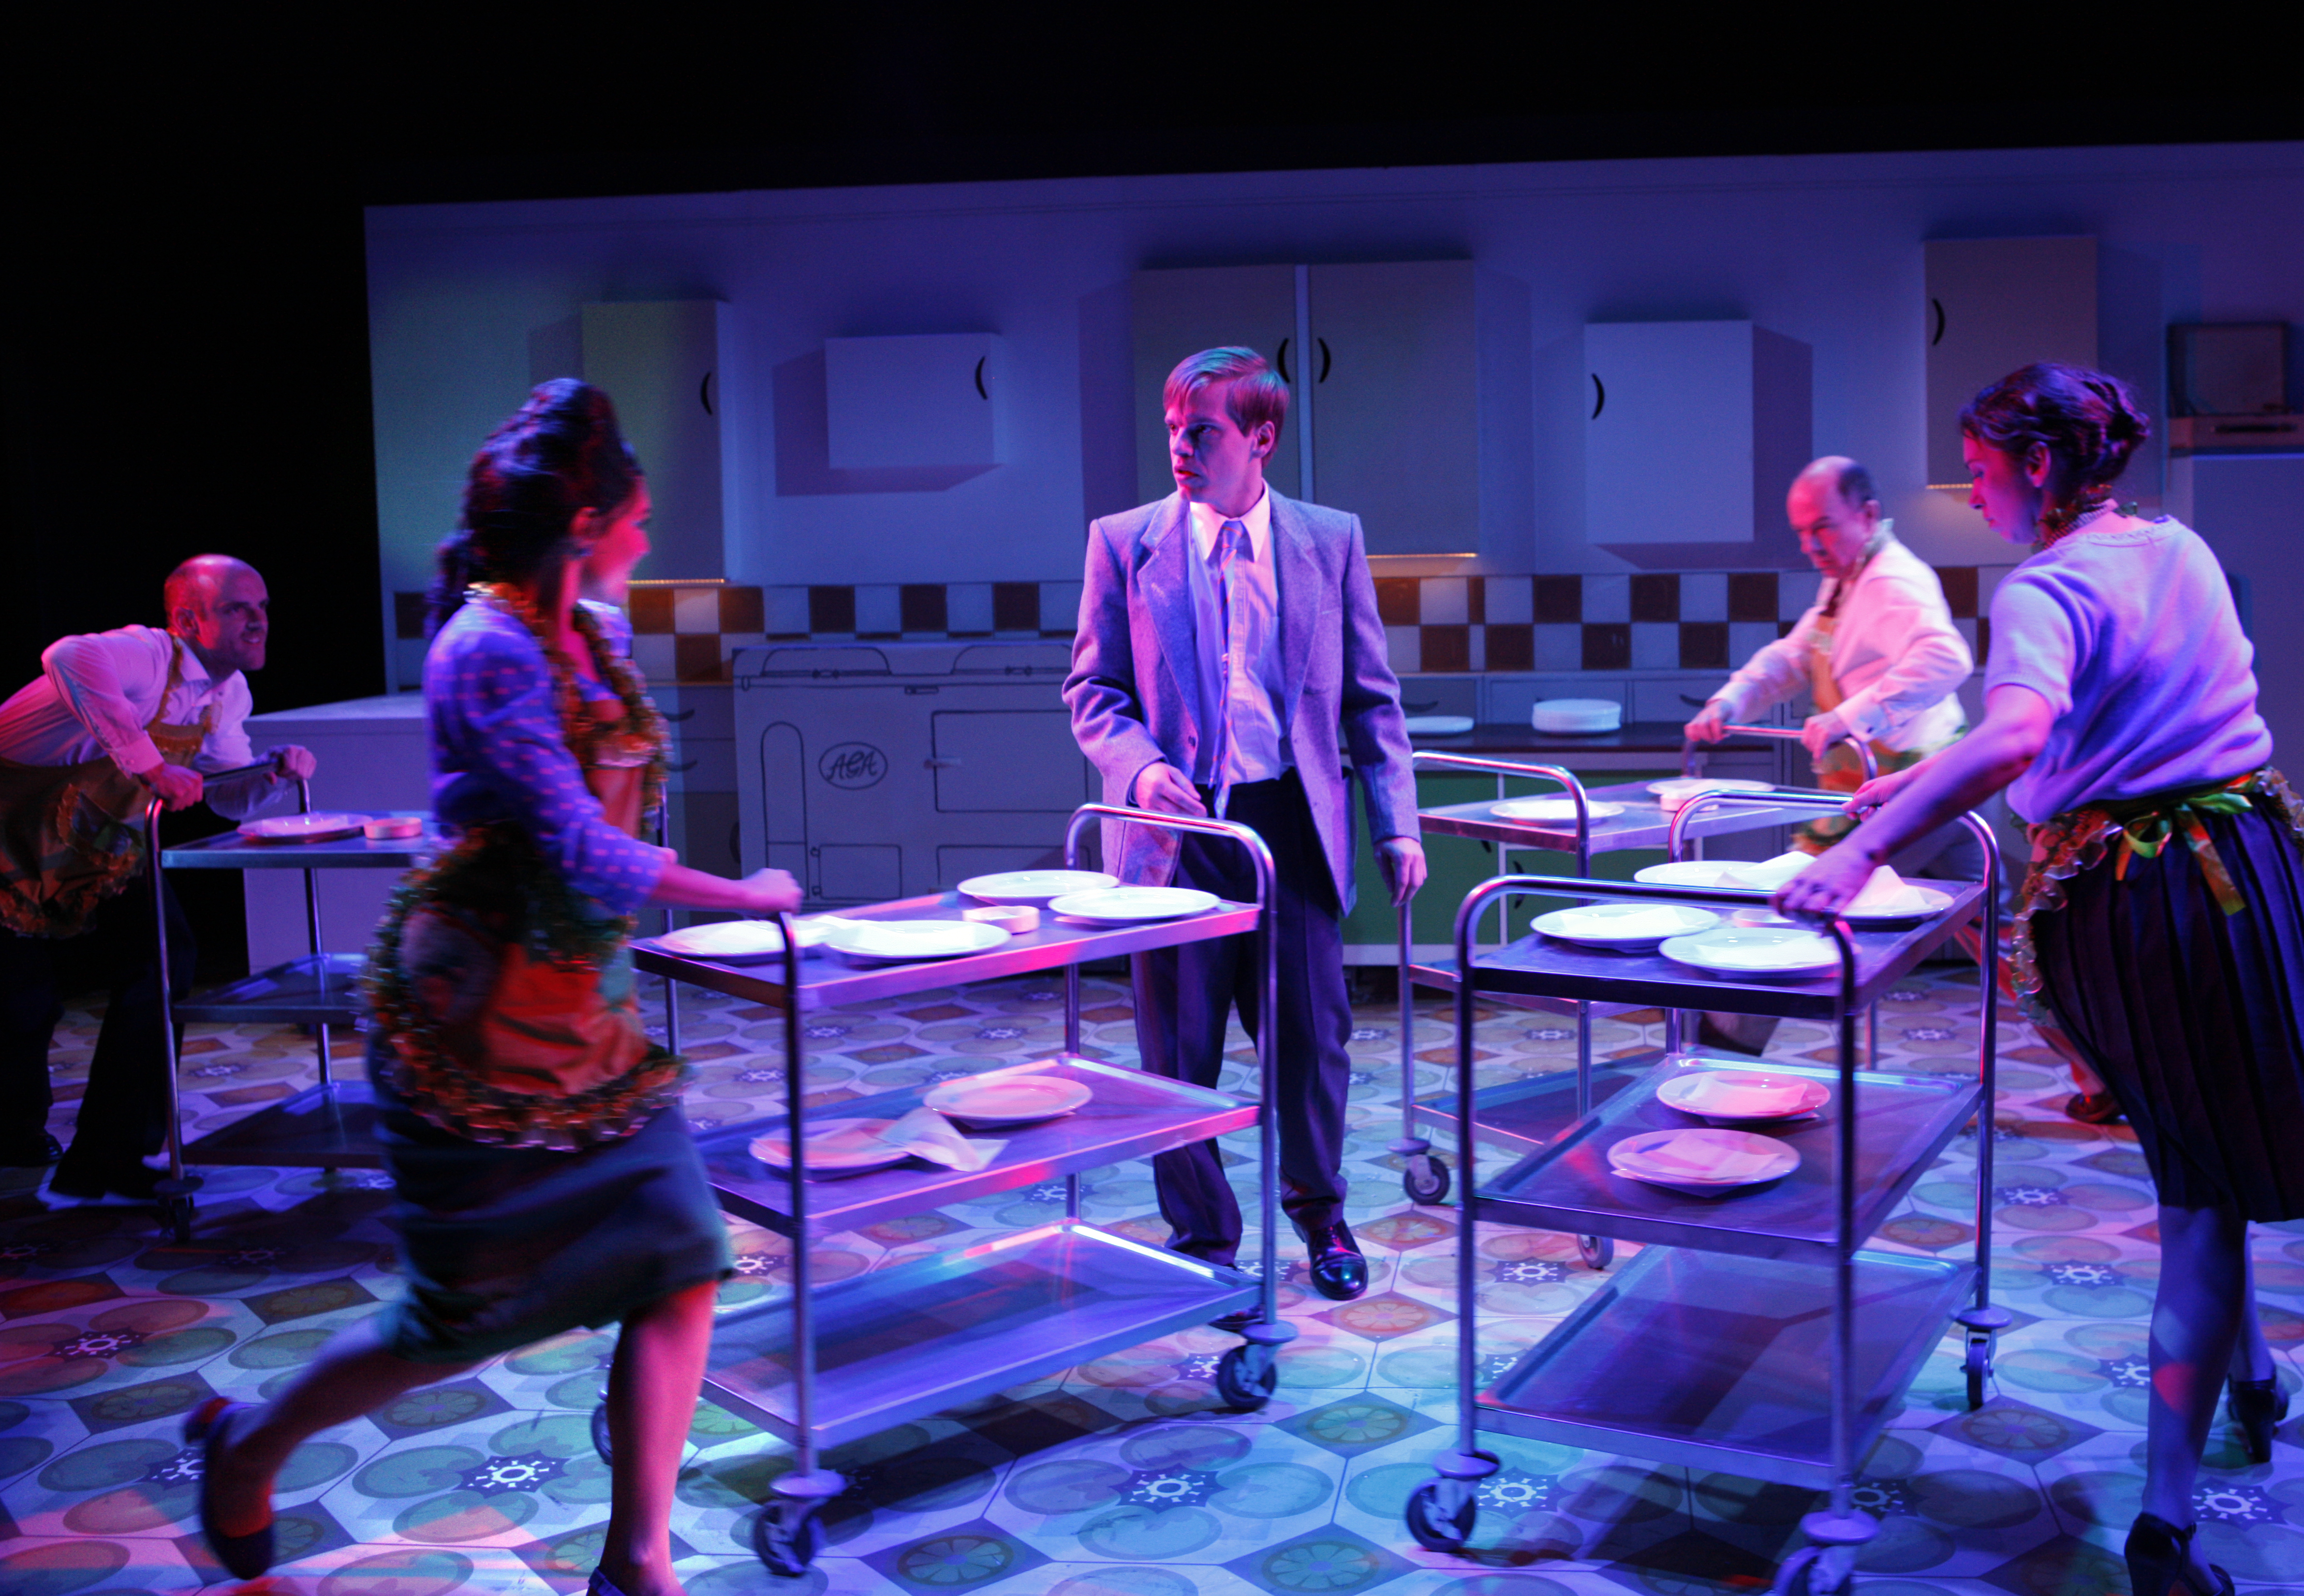 (L-R) Jake Ferretti as Josh, Marie Lawrence as Joan, Giles Cooper as Nigel Slater, Stephen Ventura as Dad, Lizzy Muncey as Mum (c) Simon Annand